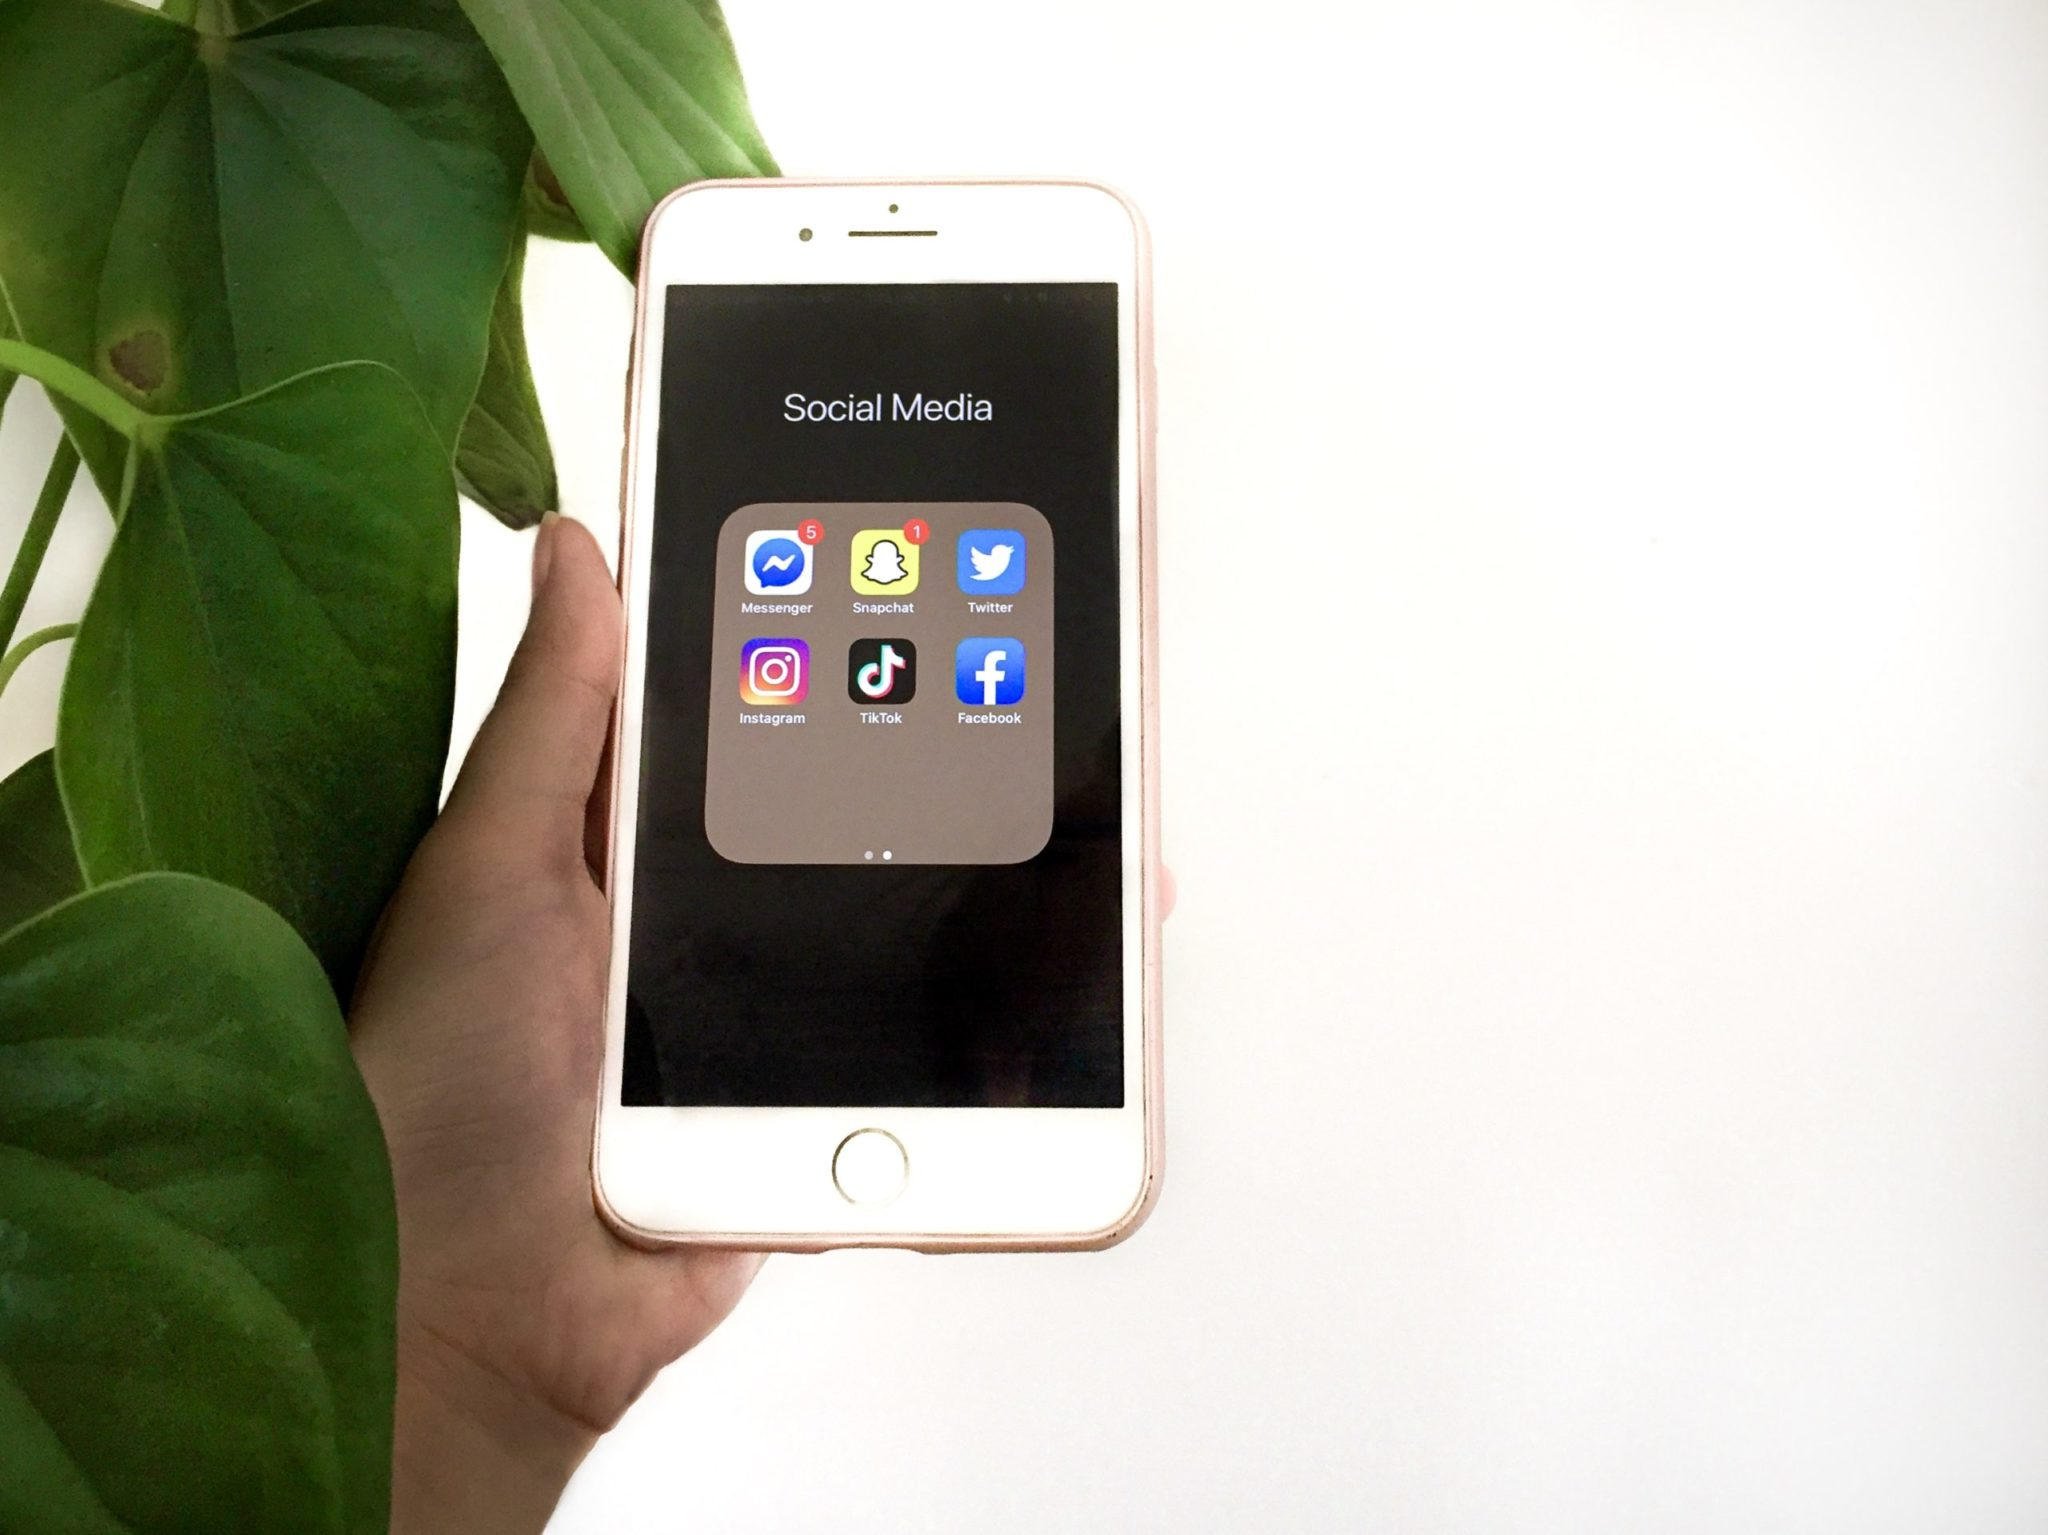 Holding a phone with social media apps